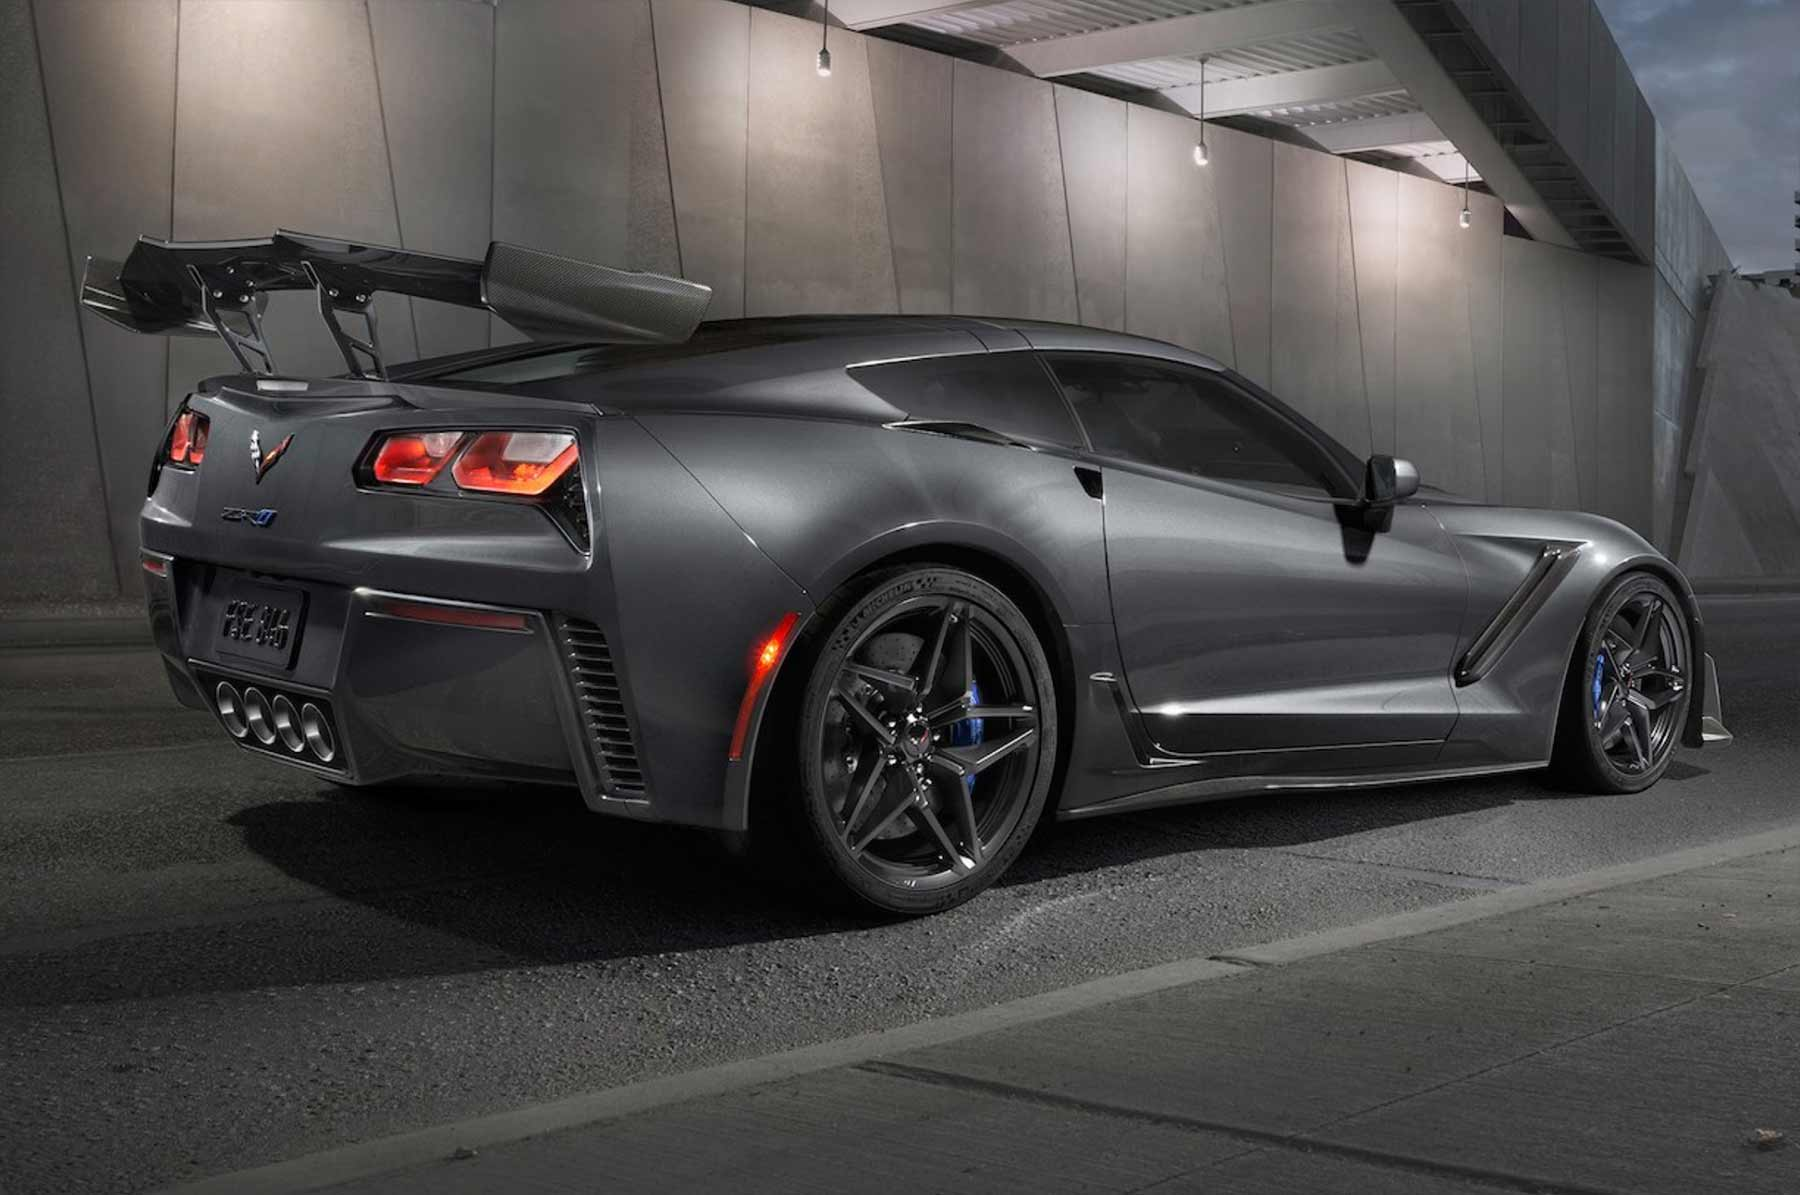 2019 Chevy Corvette ZR1 2019-Chevy-Corvette-ZR1_08